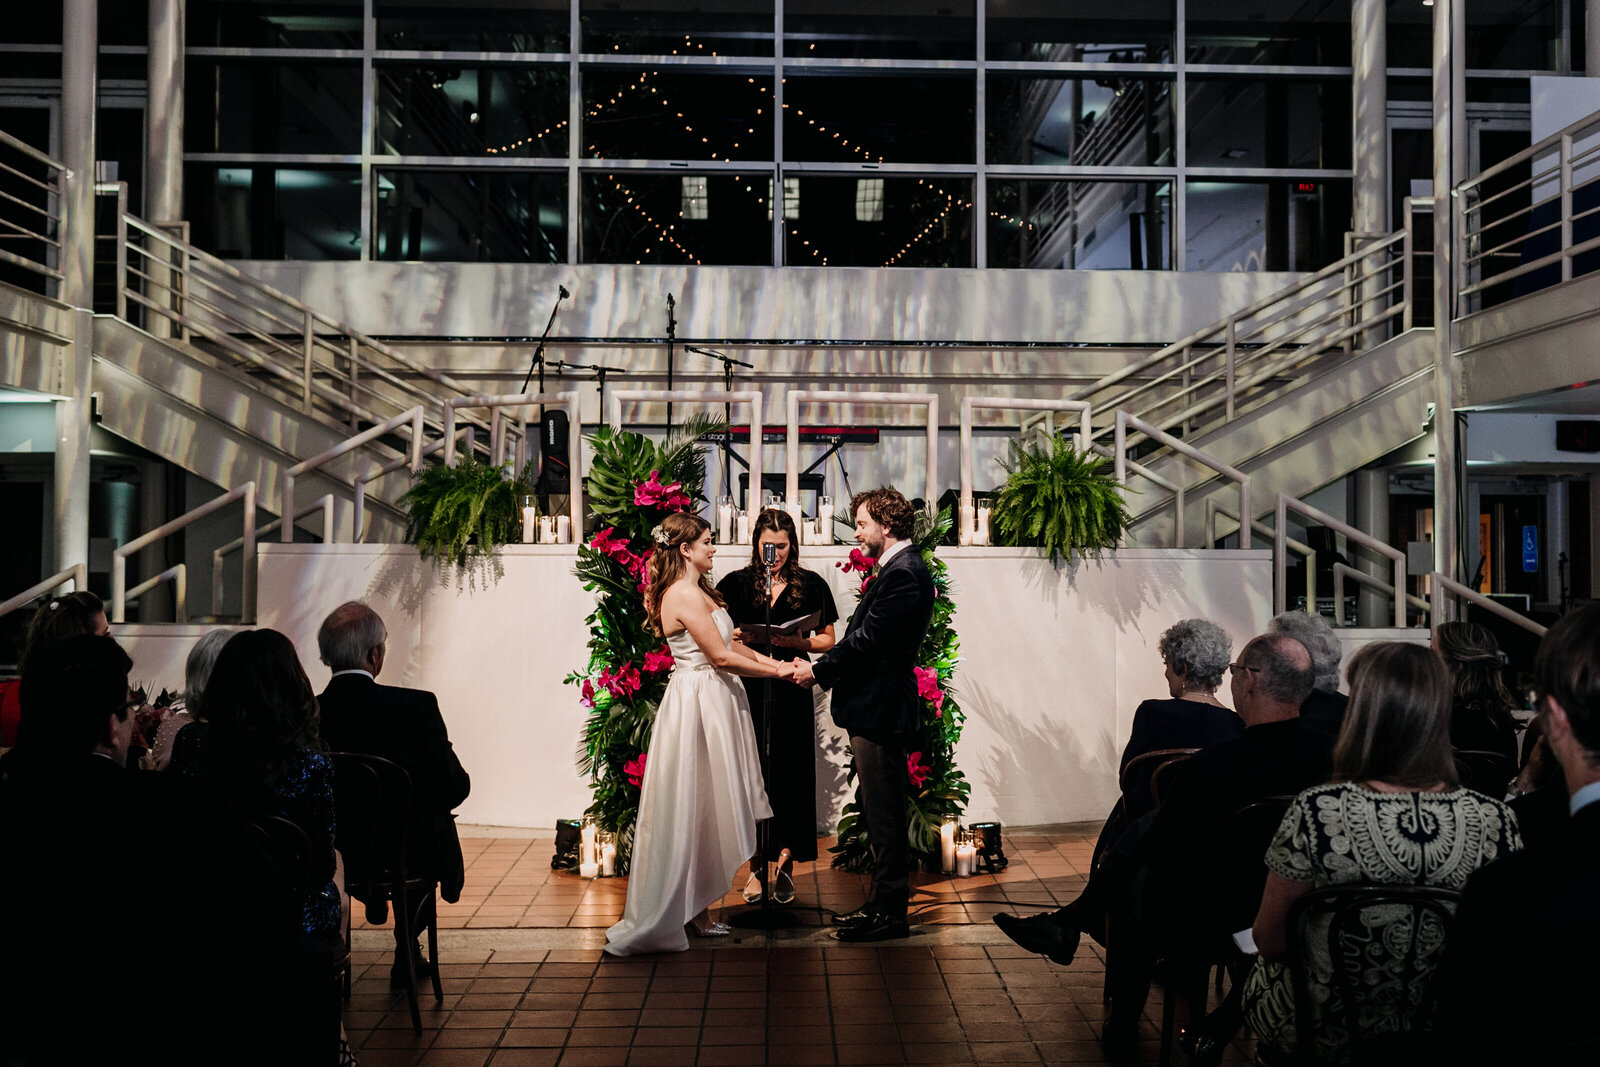 wedding ceremony with dramatic light uarts